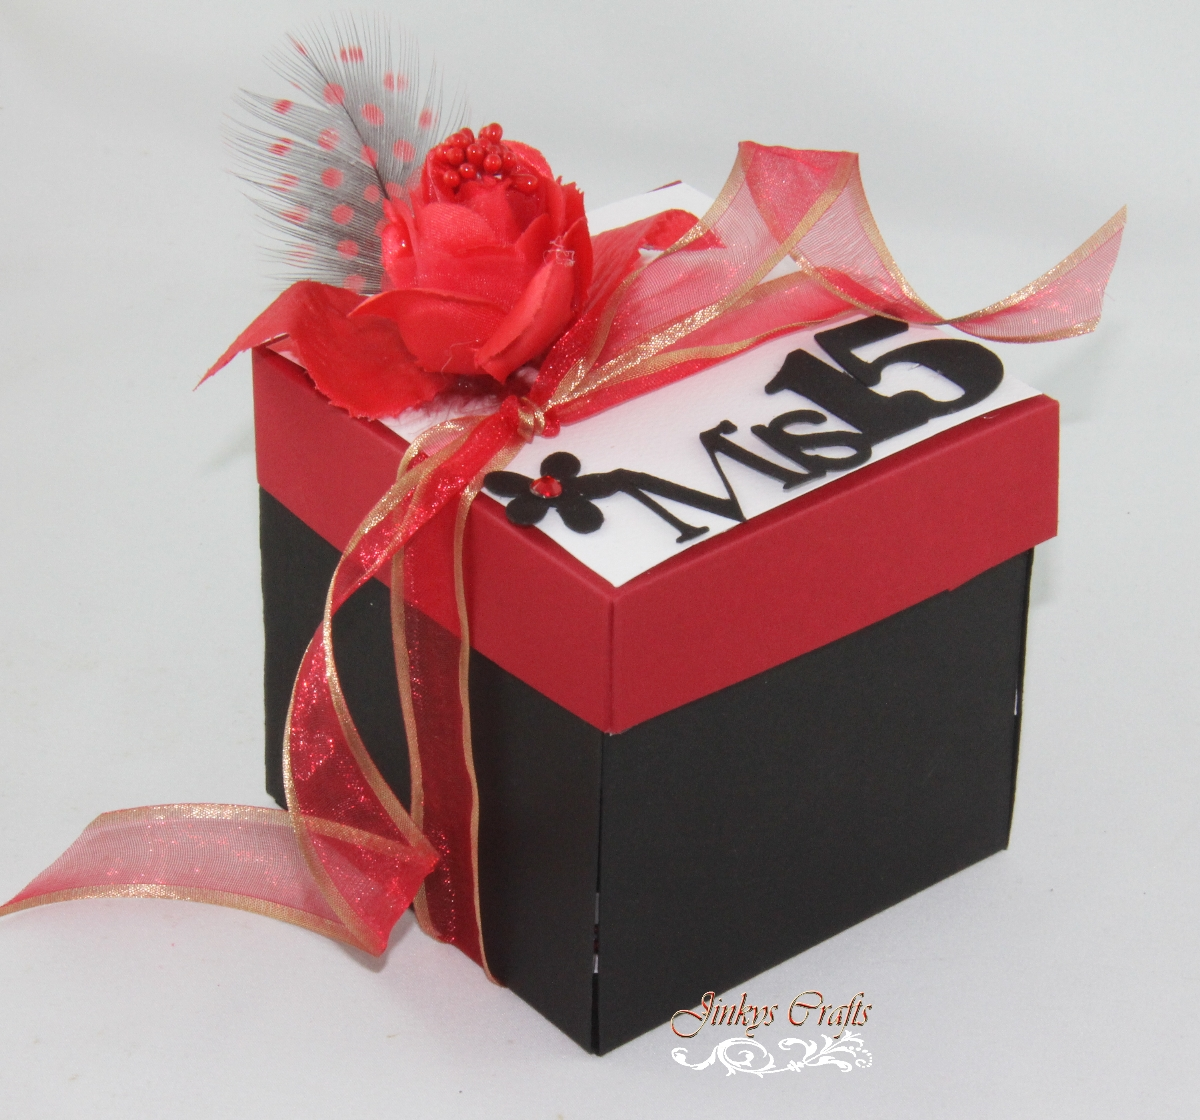 Red & Black Mis Quince Exploding Box Invitation - Jinkys Crafts